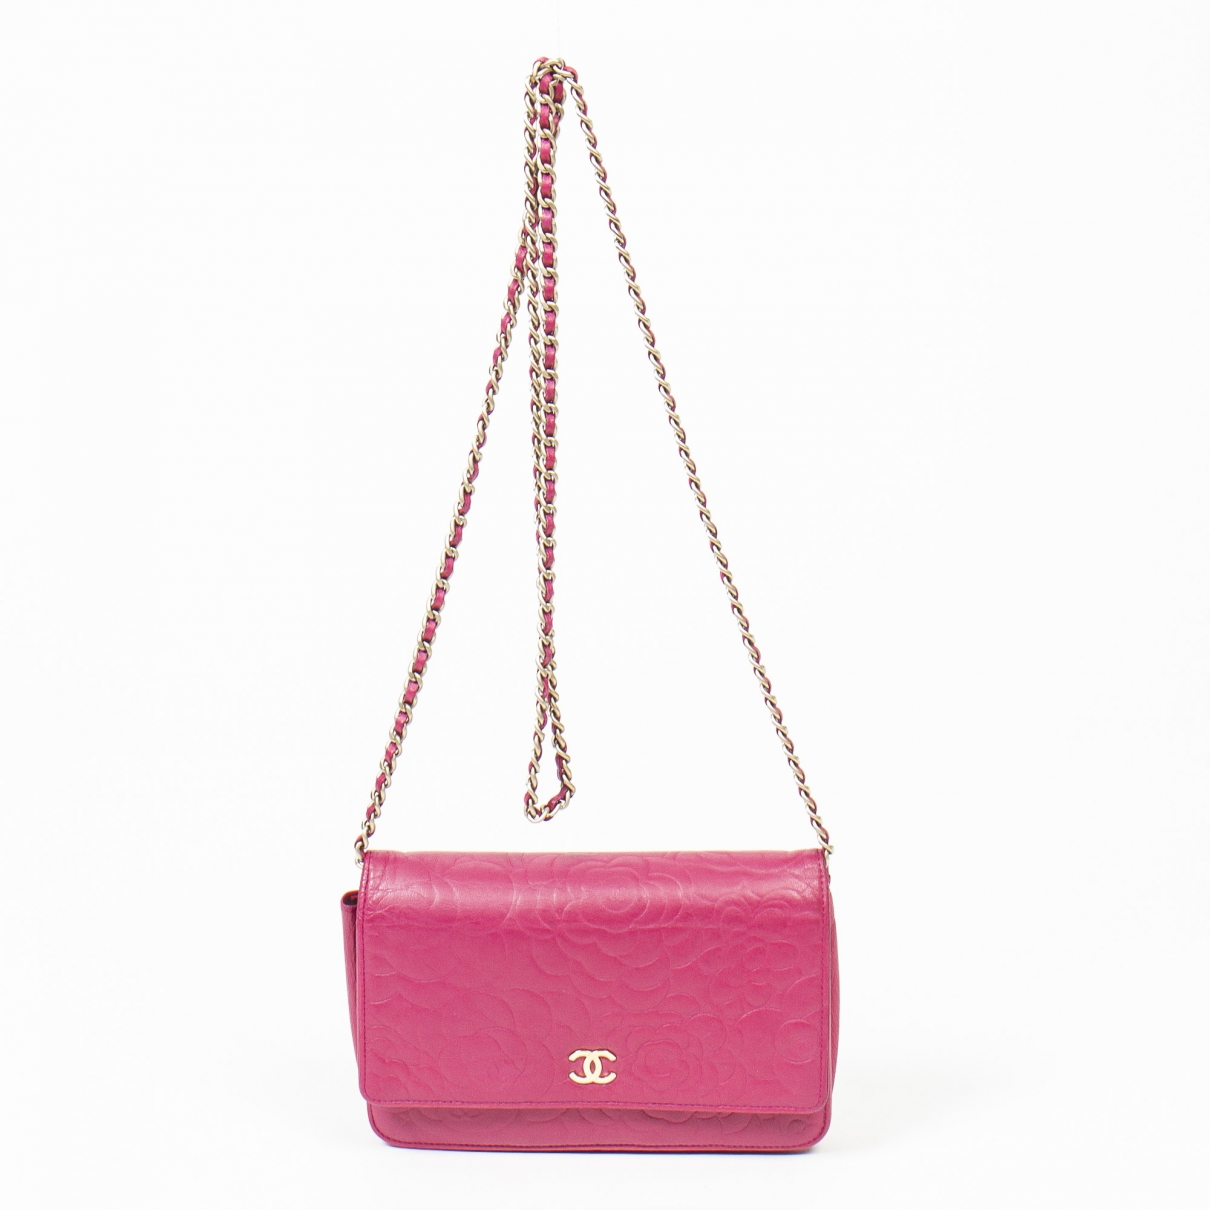 Chanel Wallet on Chain Pink Leather handbag for Women \N